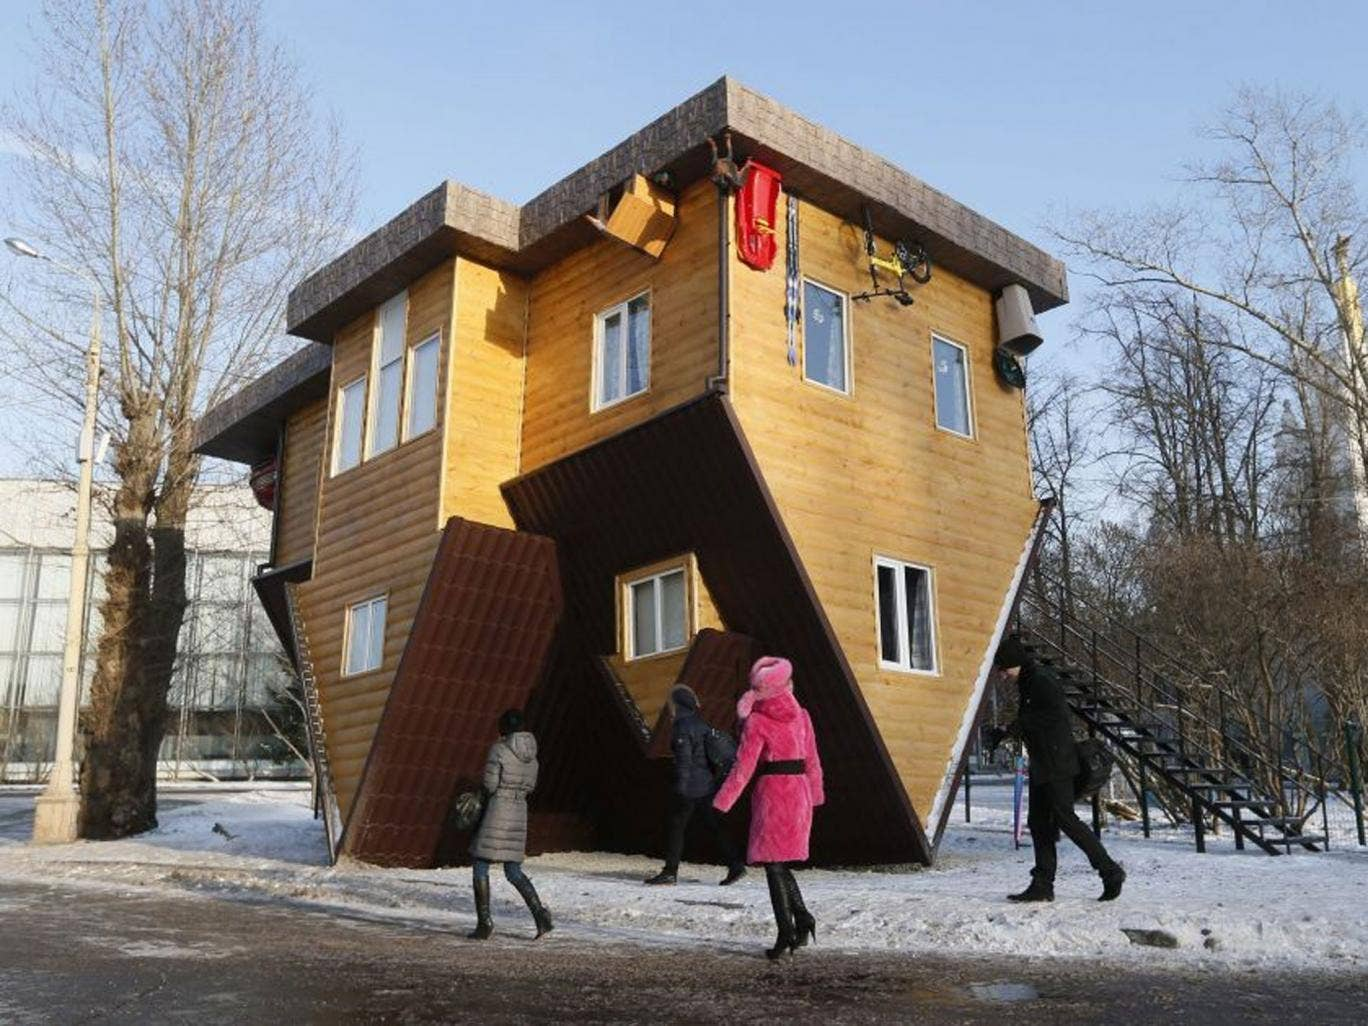 People look at an 'Upside Down House' attraction displayed at the VVTs the All-Russia Exhibition Center in Moscow